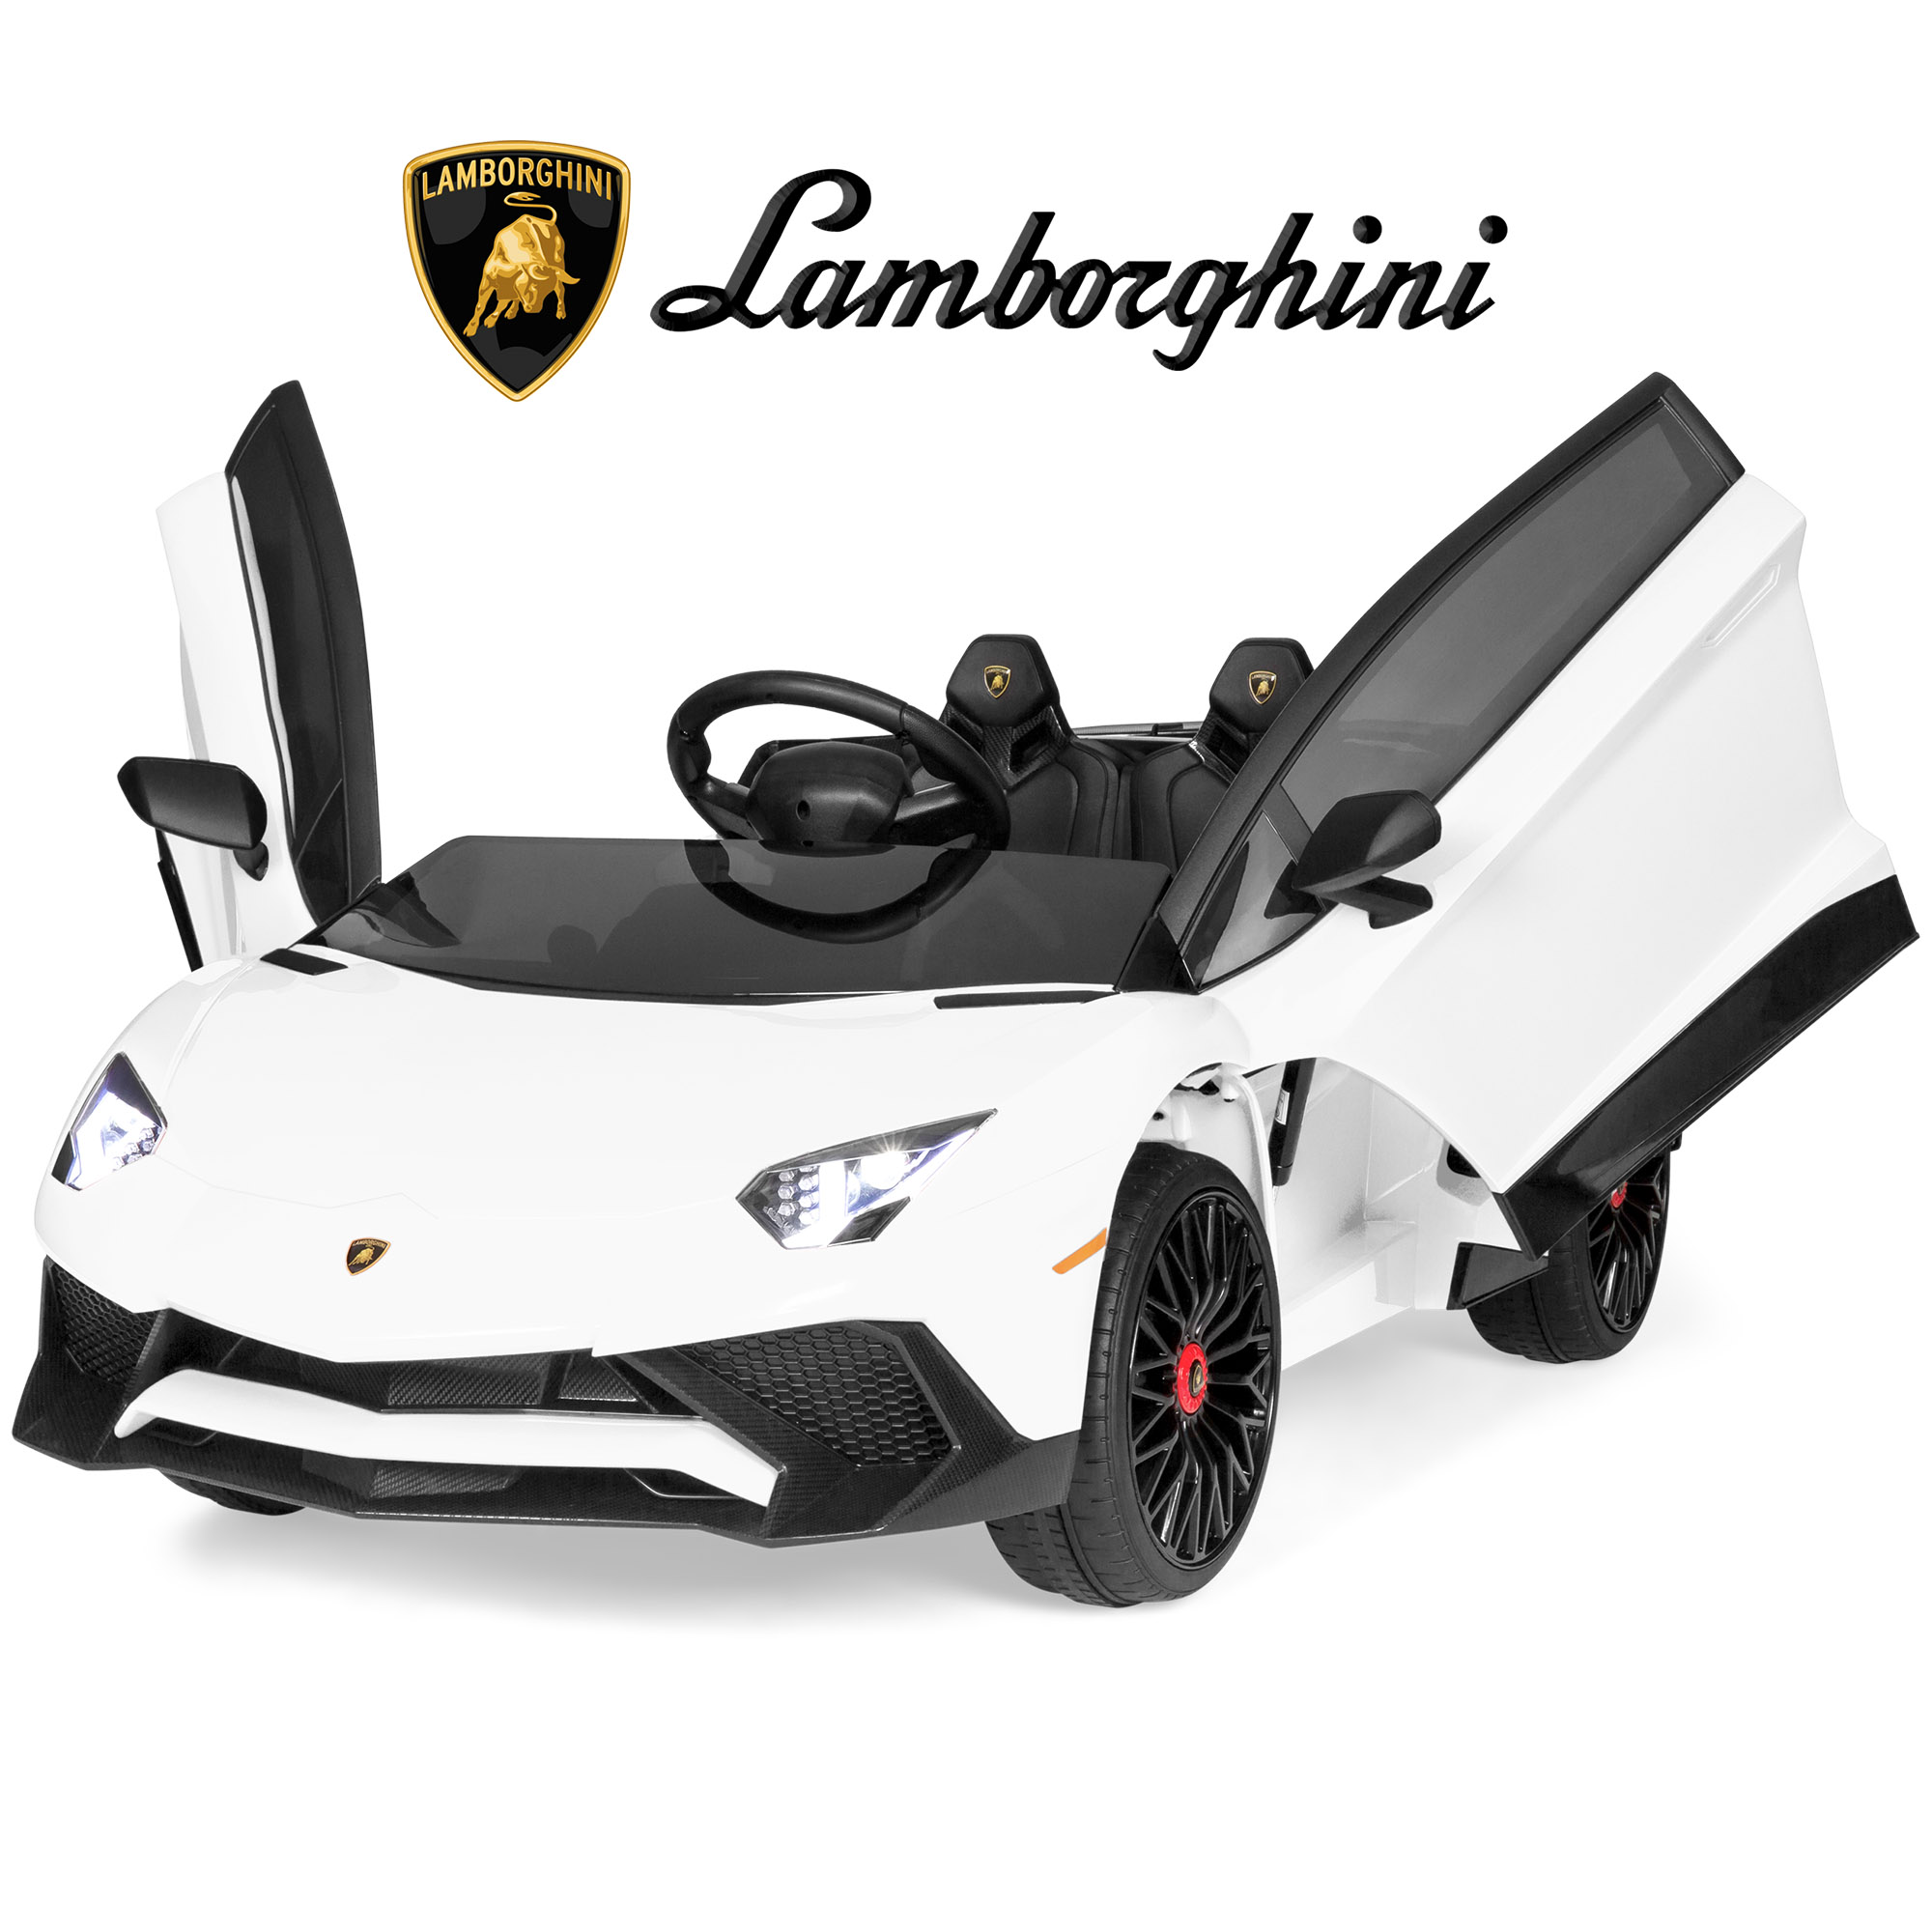 Best Choice Products Kids 12V Ride On Battery Powered Vehicle Lamborghini Aventador SV Sports Car Toy w/ Parent Control, AUX Cable, 2 Speed Options, LED Lights, Music, Horn - White